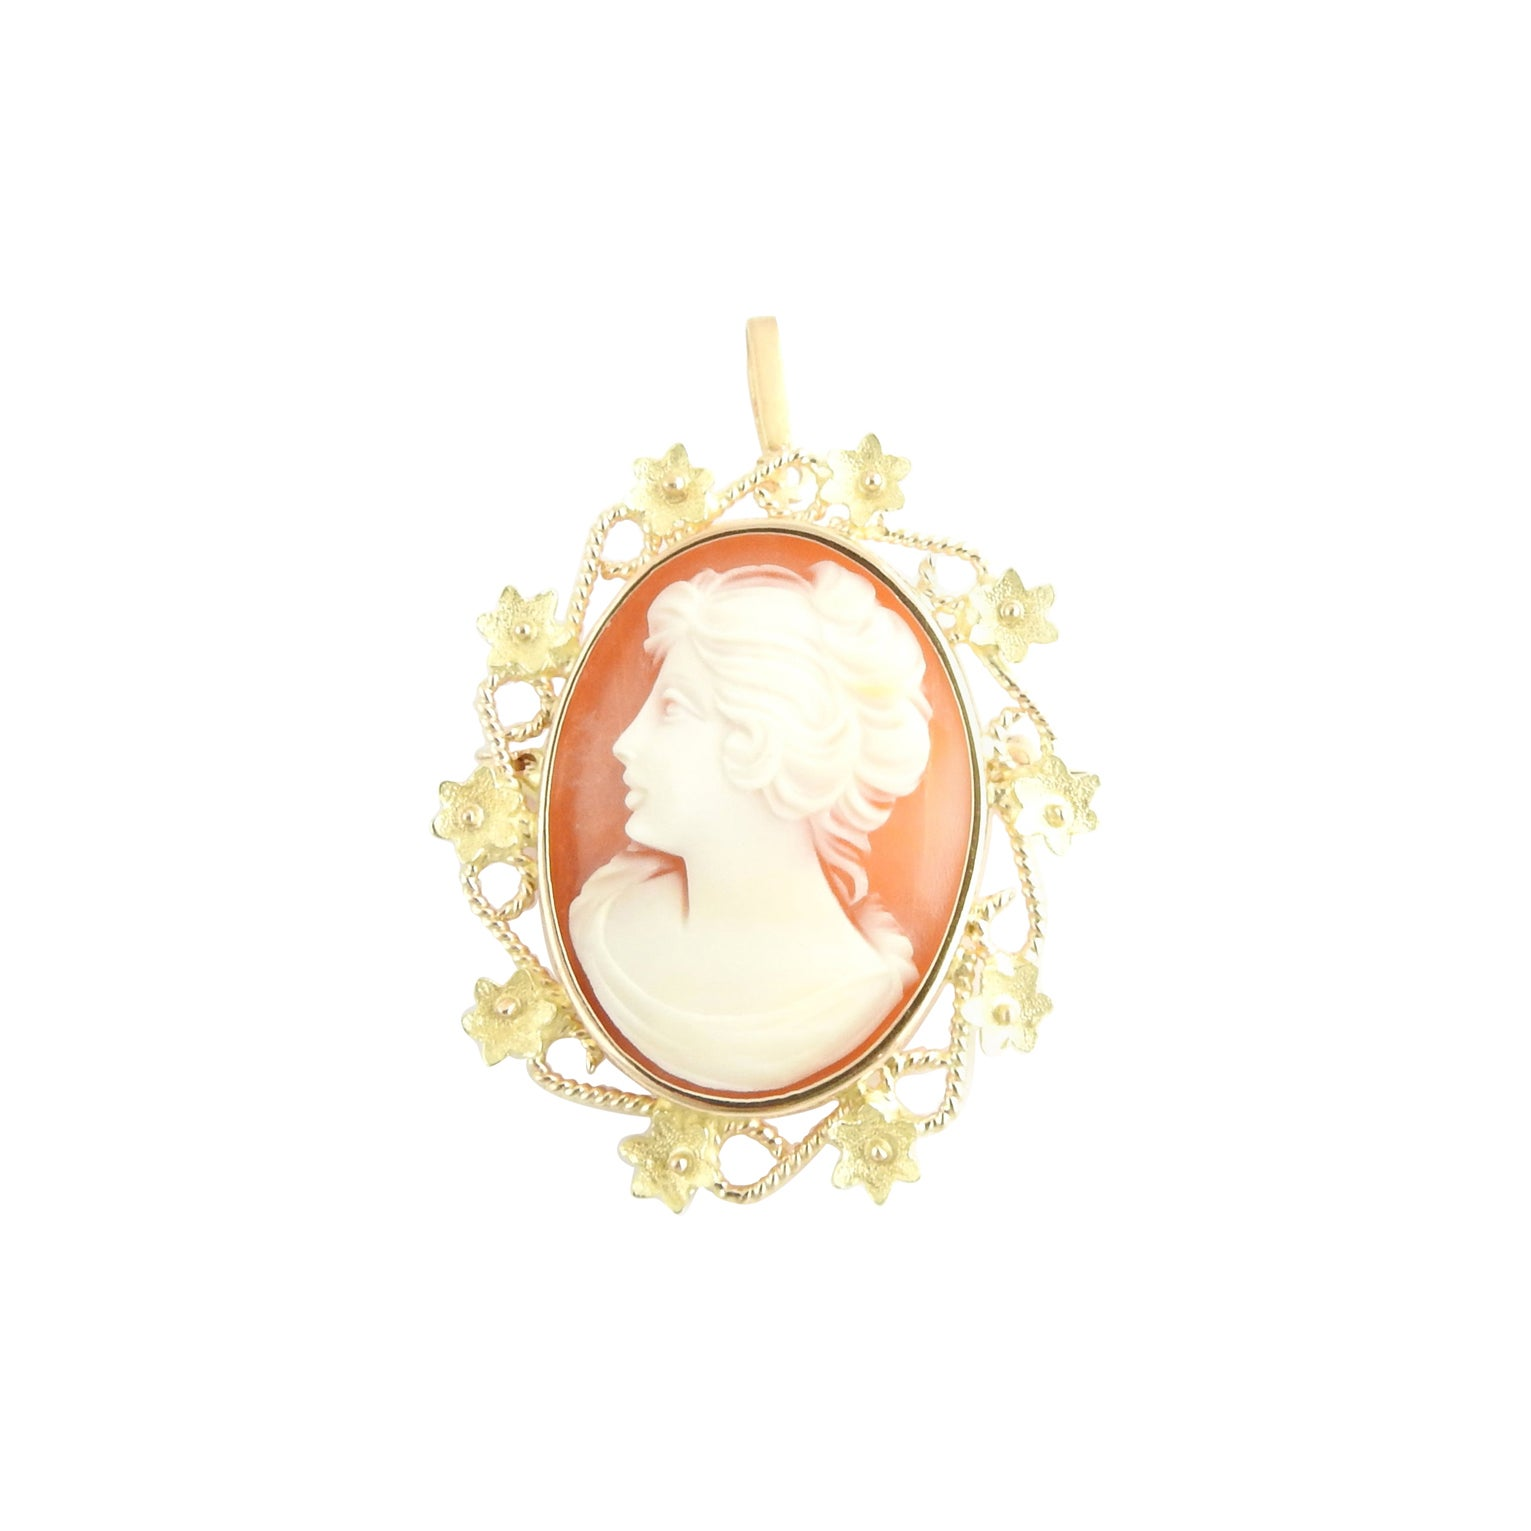 18 Karat Yellow Gold Cameo Brooch / Pendant